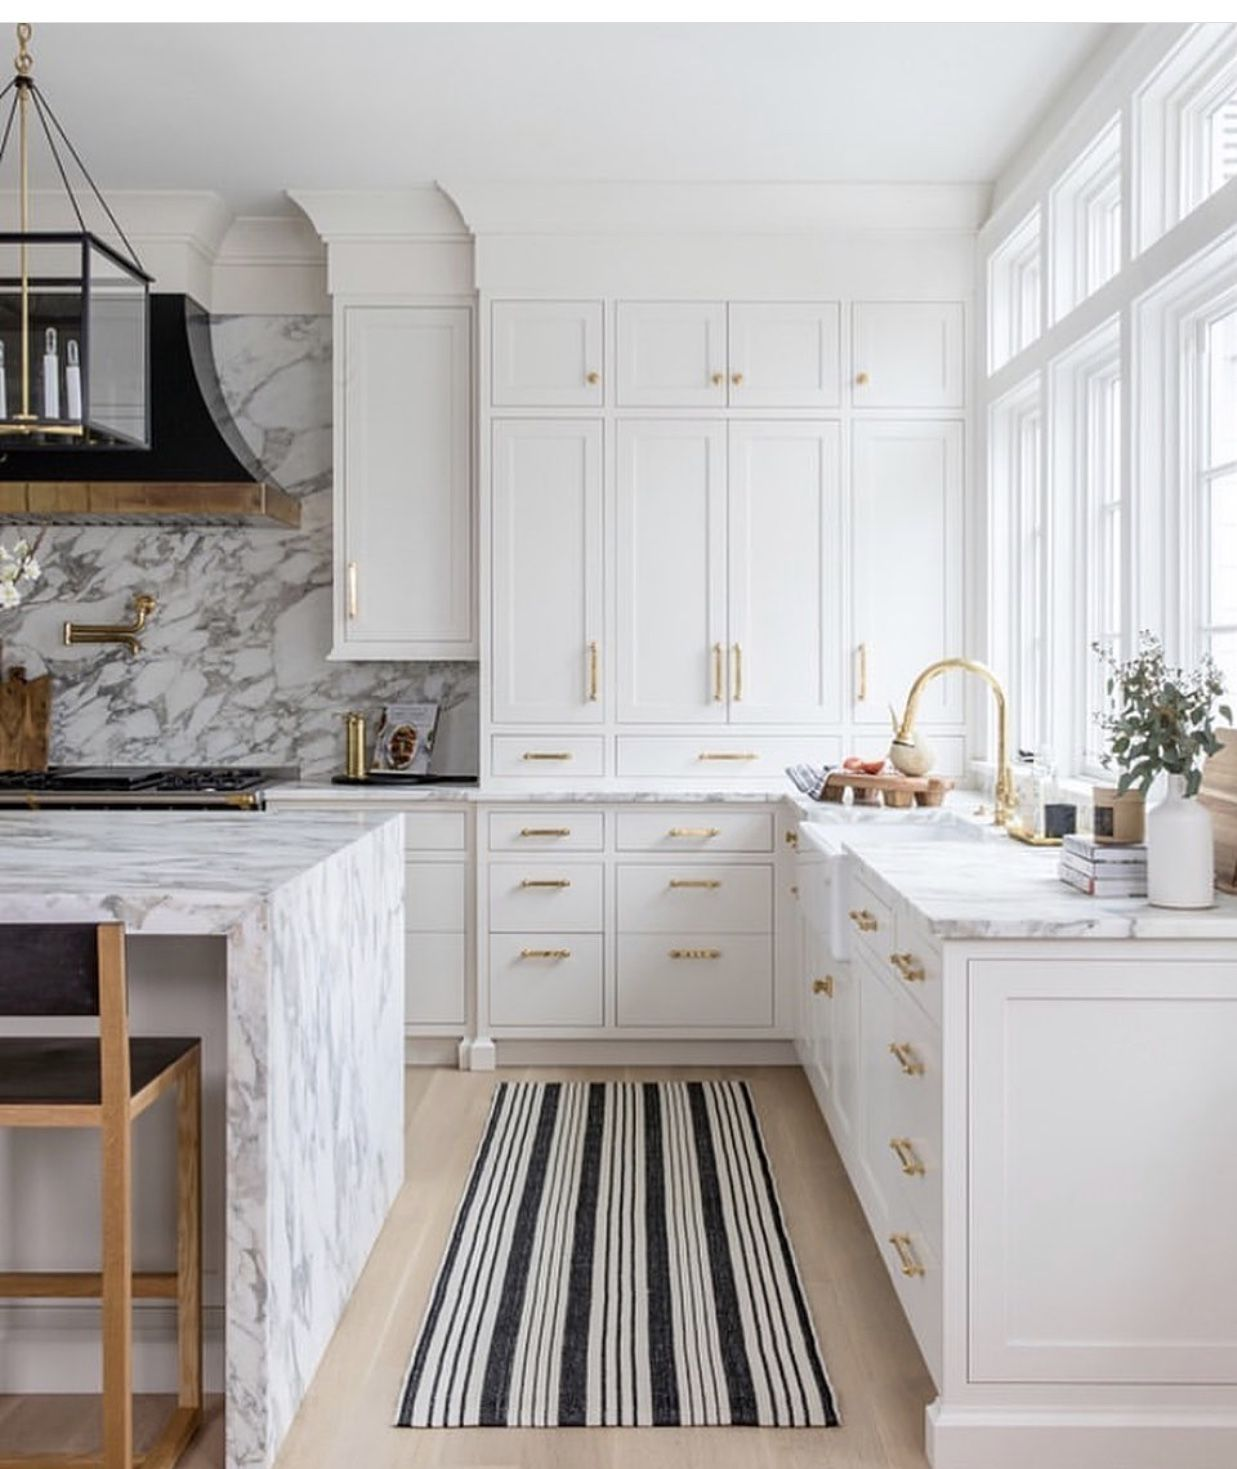 Attractive Interiors Home Staging: Pin By Venu Bhakhri On Kitchen In 2020